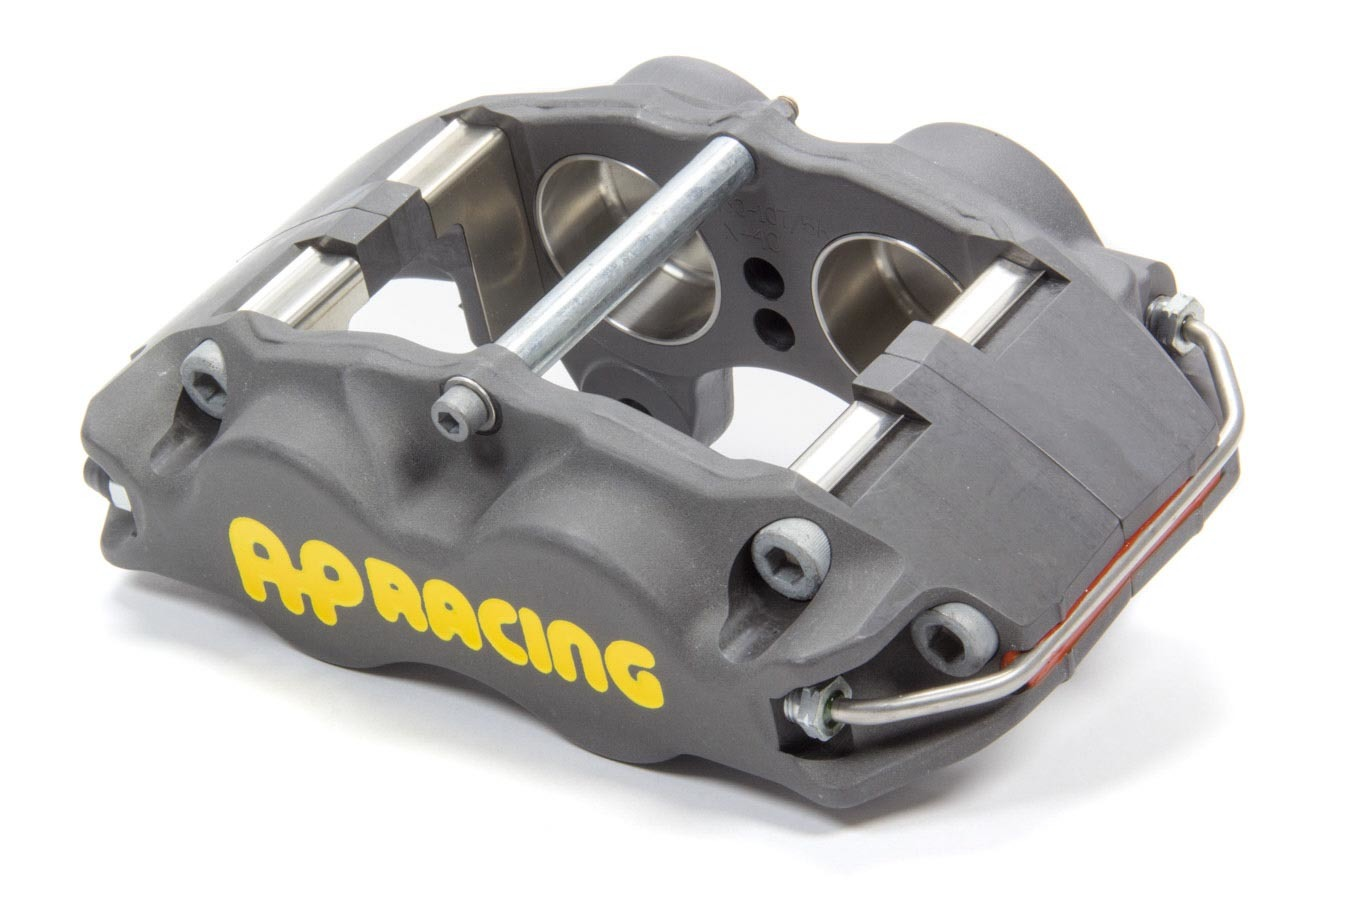 AP Brake 1902801 Brake Caliper, Driver Side, Front, 4 Piston, Aluminum, Clear Anodize, 11.750 to 12.200 in OD x 1.25 in Thick Rotor, 3.500 in Lug Mount, Each